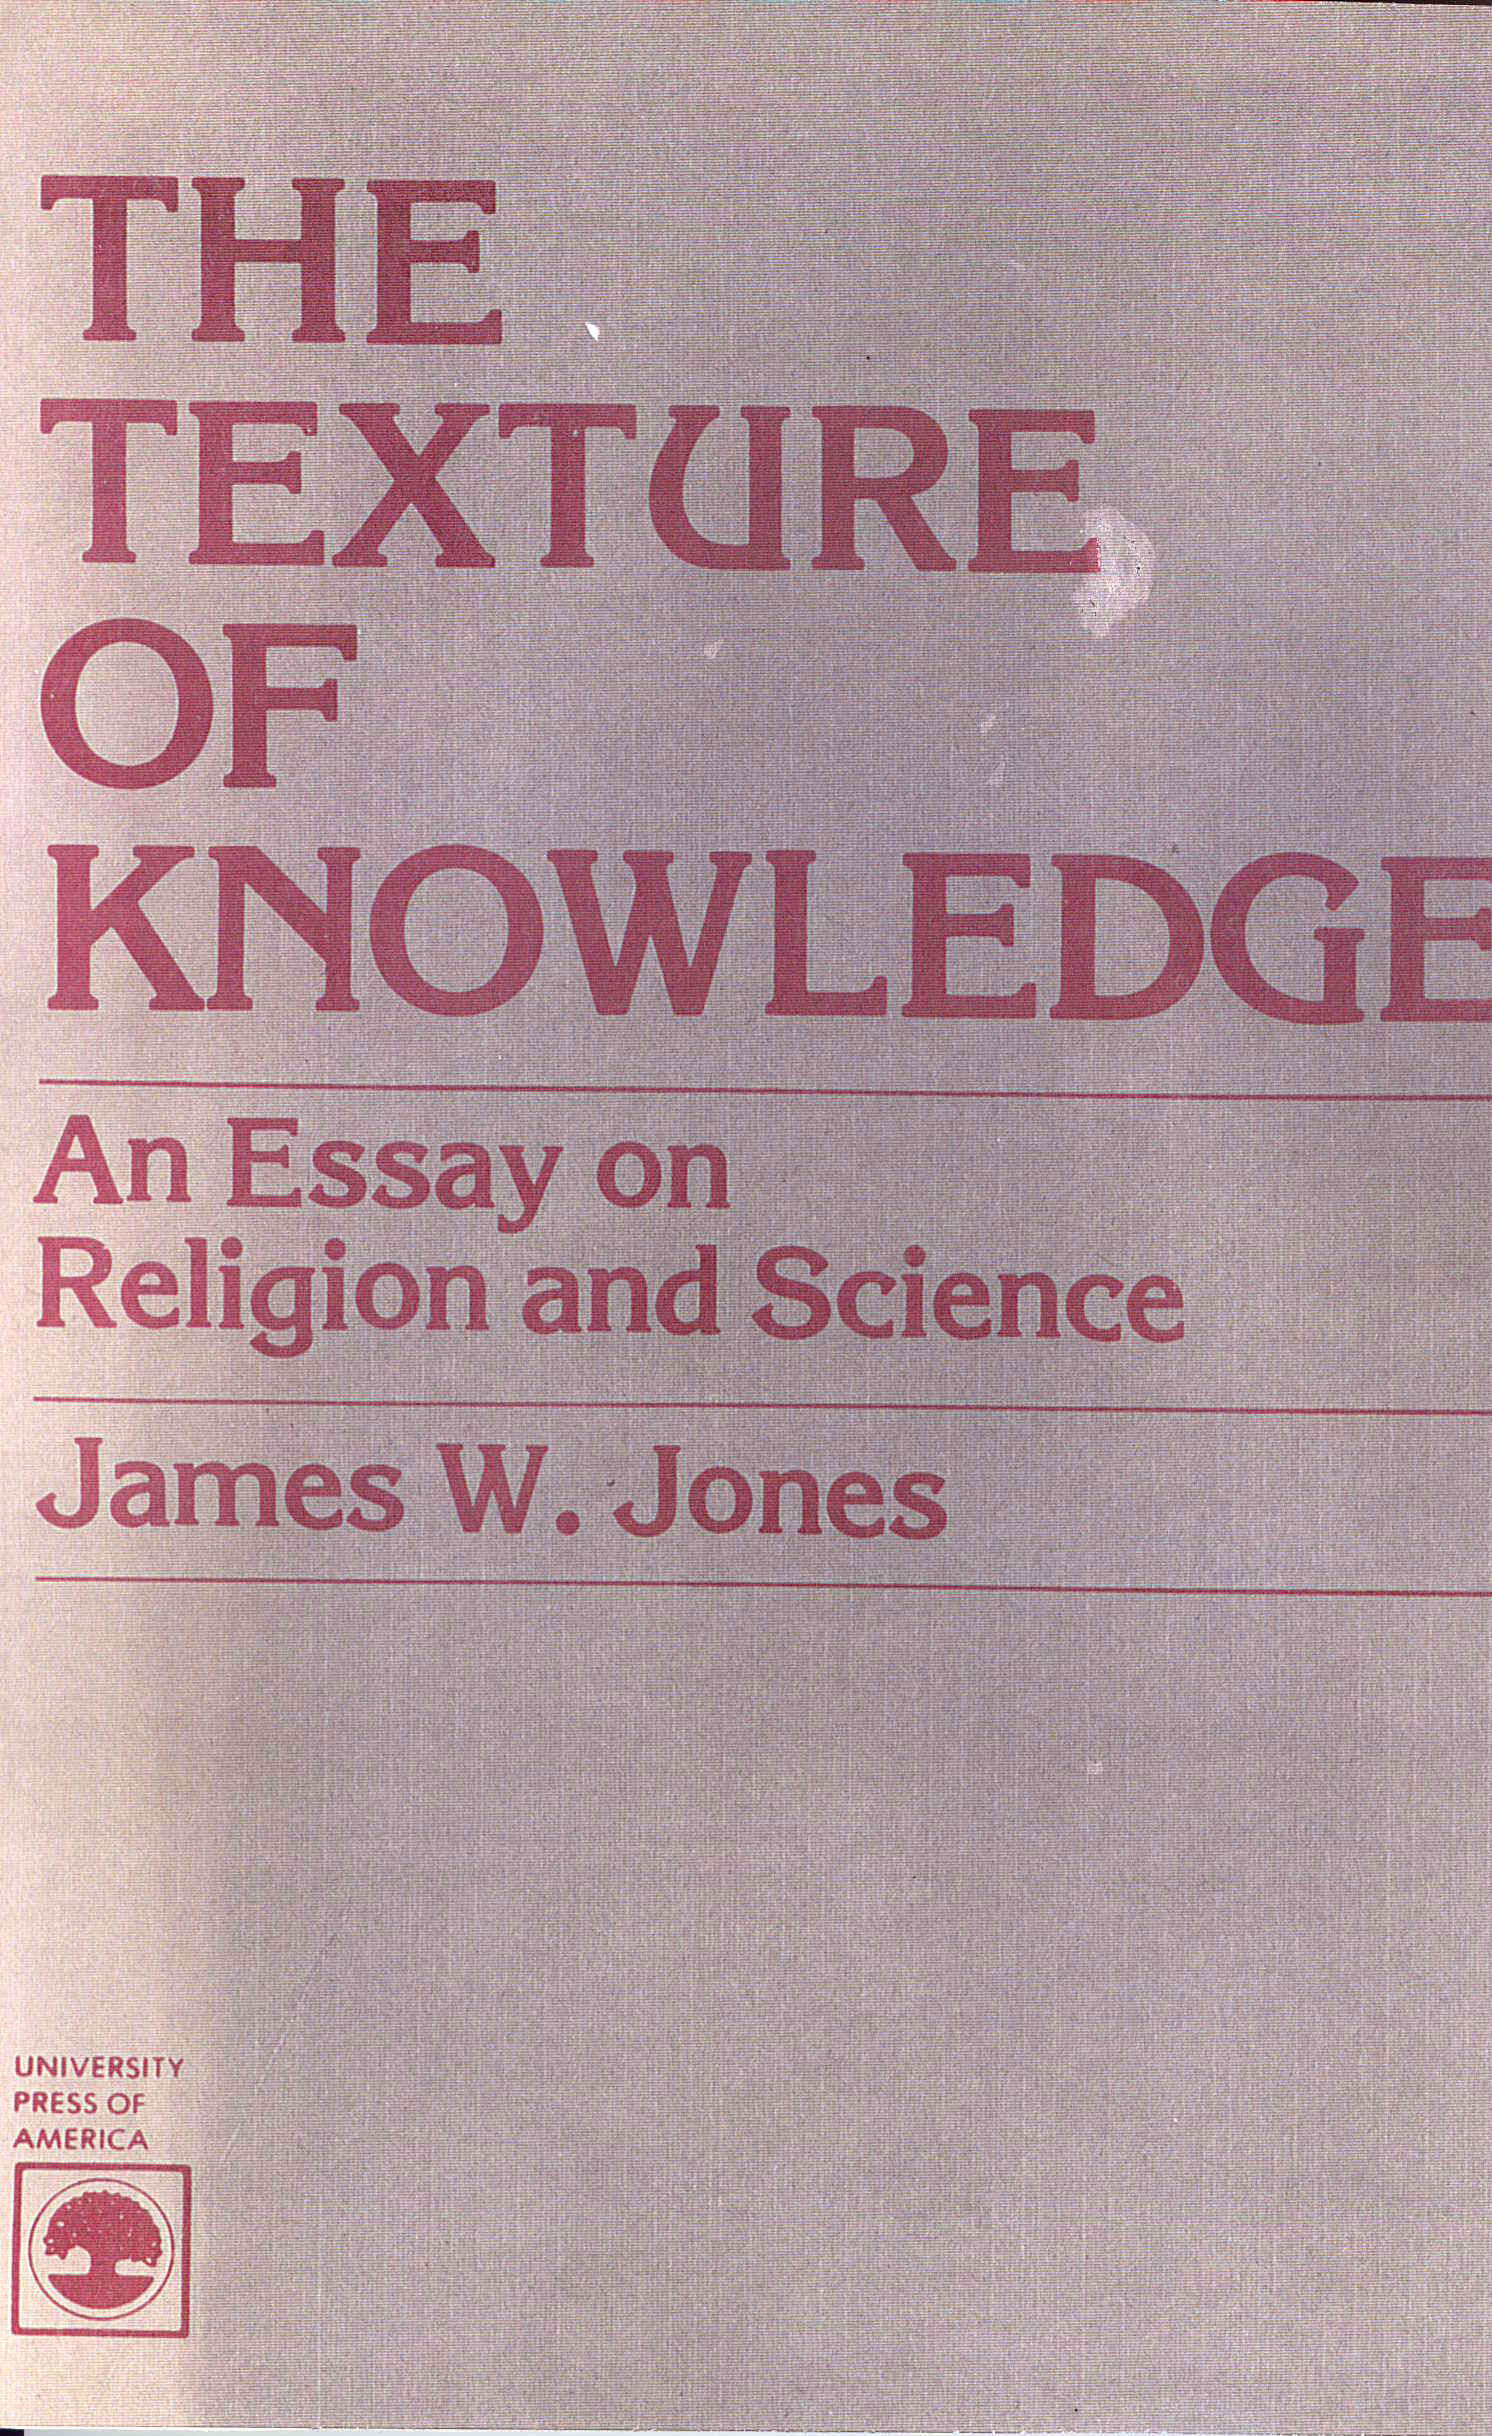 jones james w the texture of knowledgean essay on religion and science univ press  america